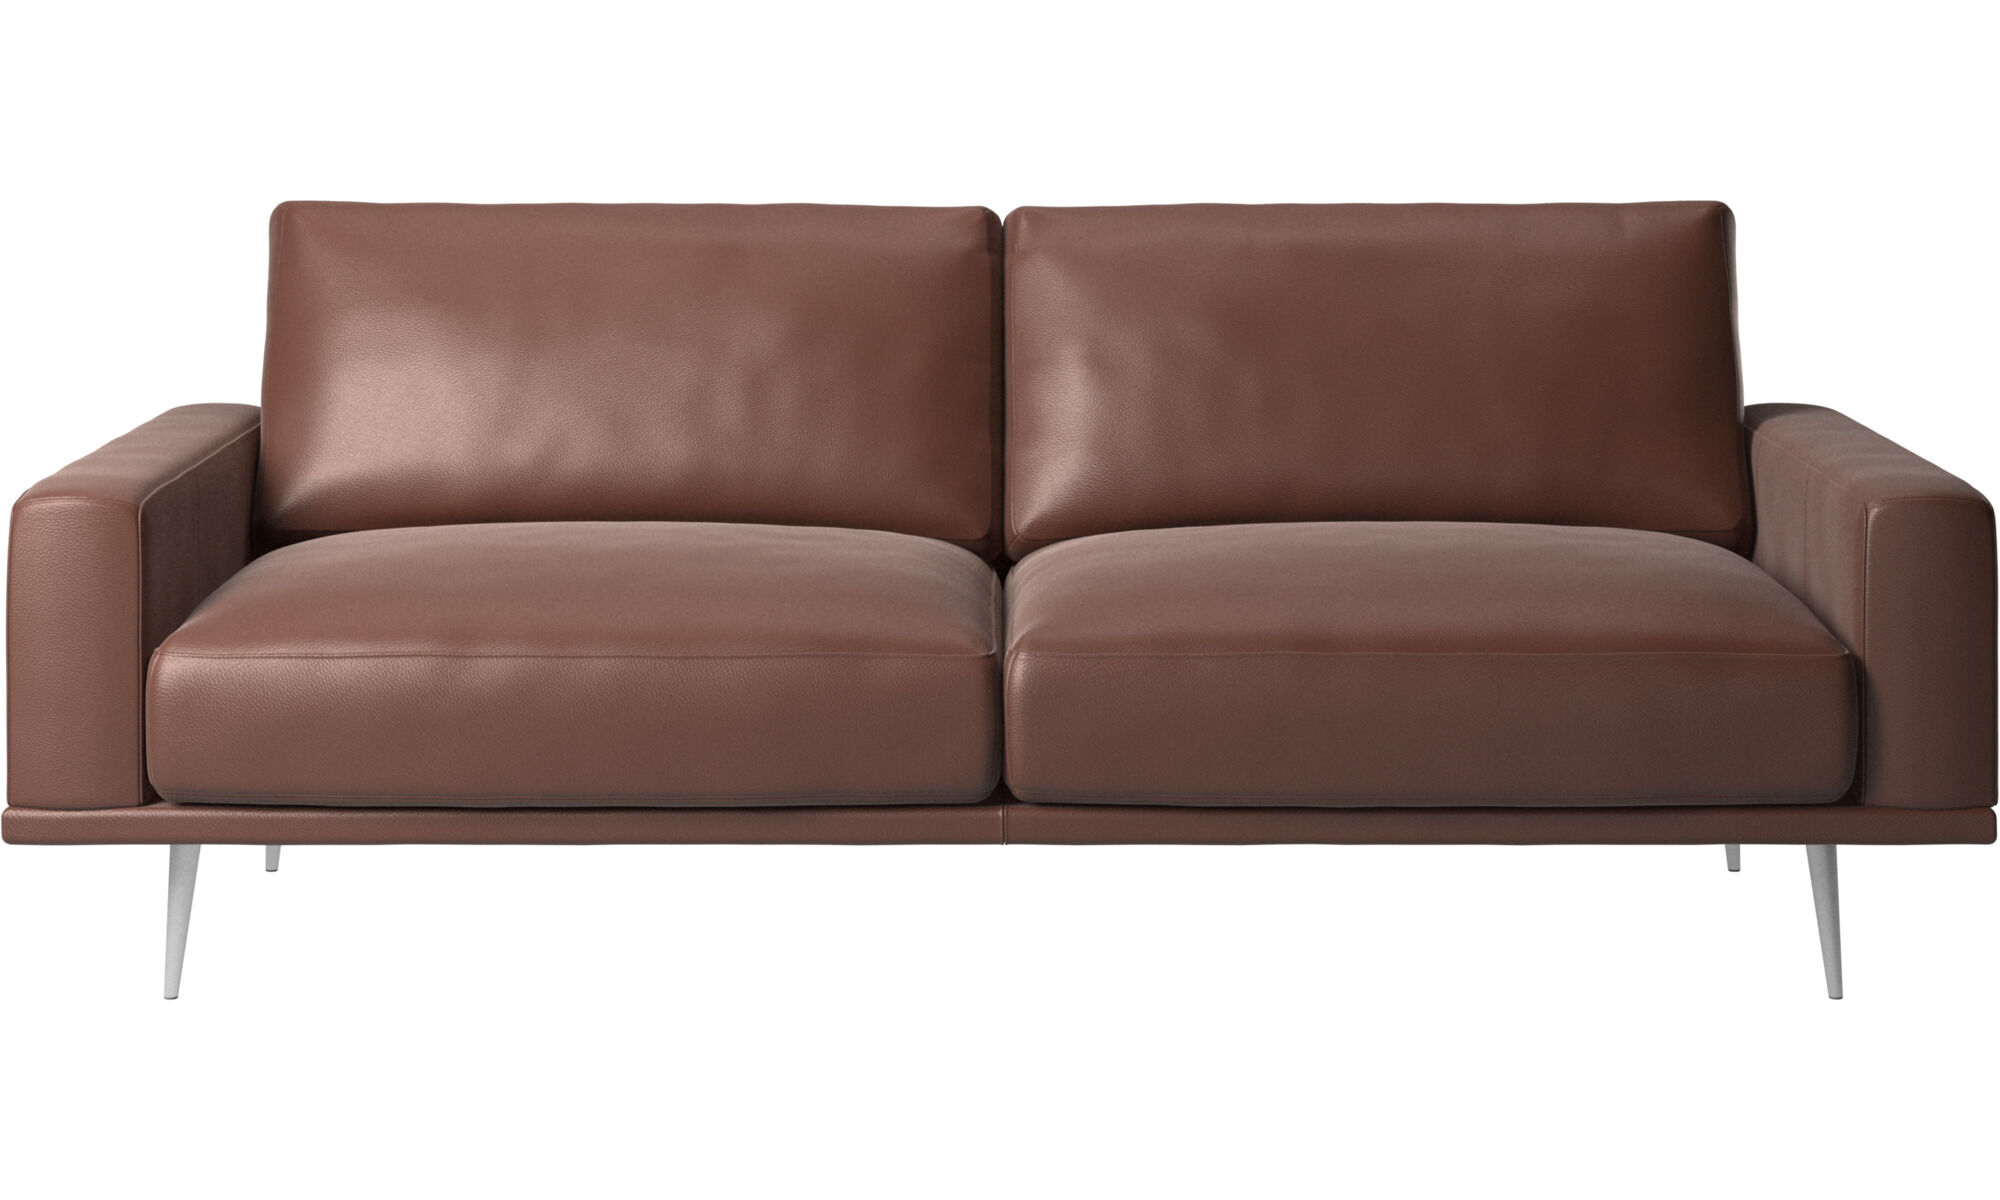 New Designs   Carlton Sofa   Brown   Leather